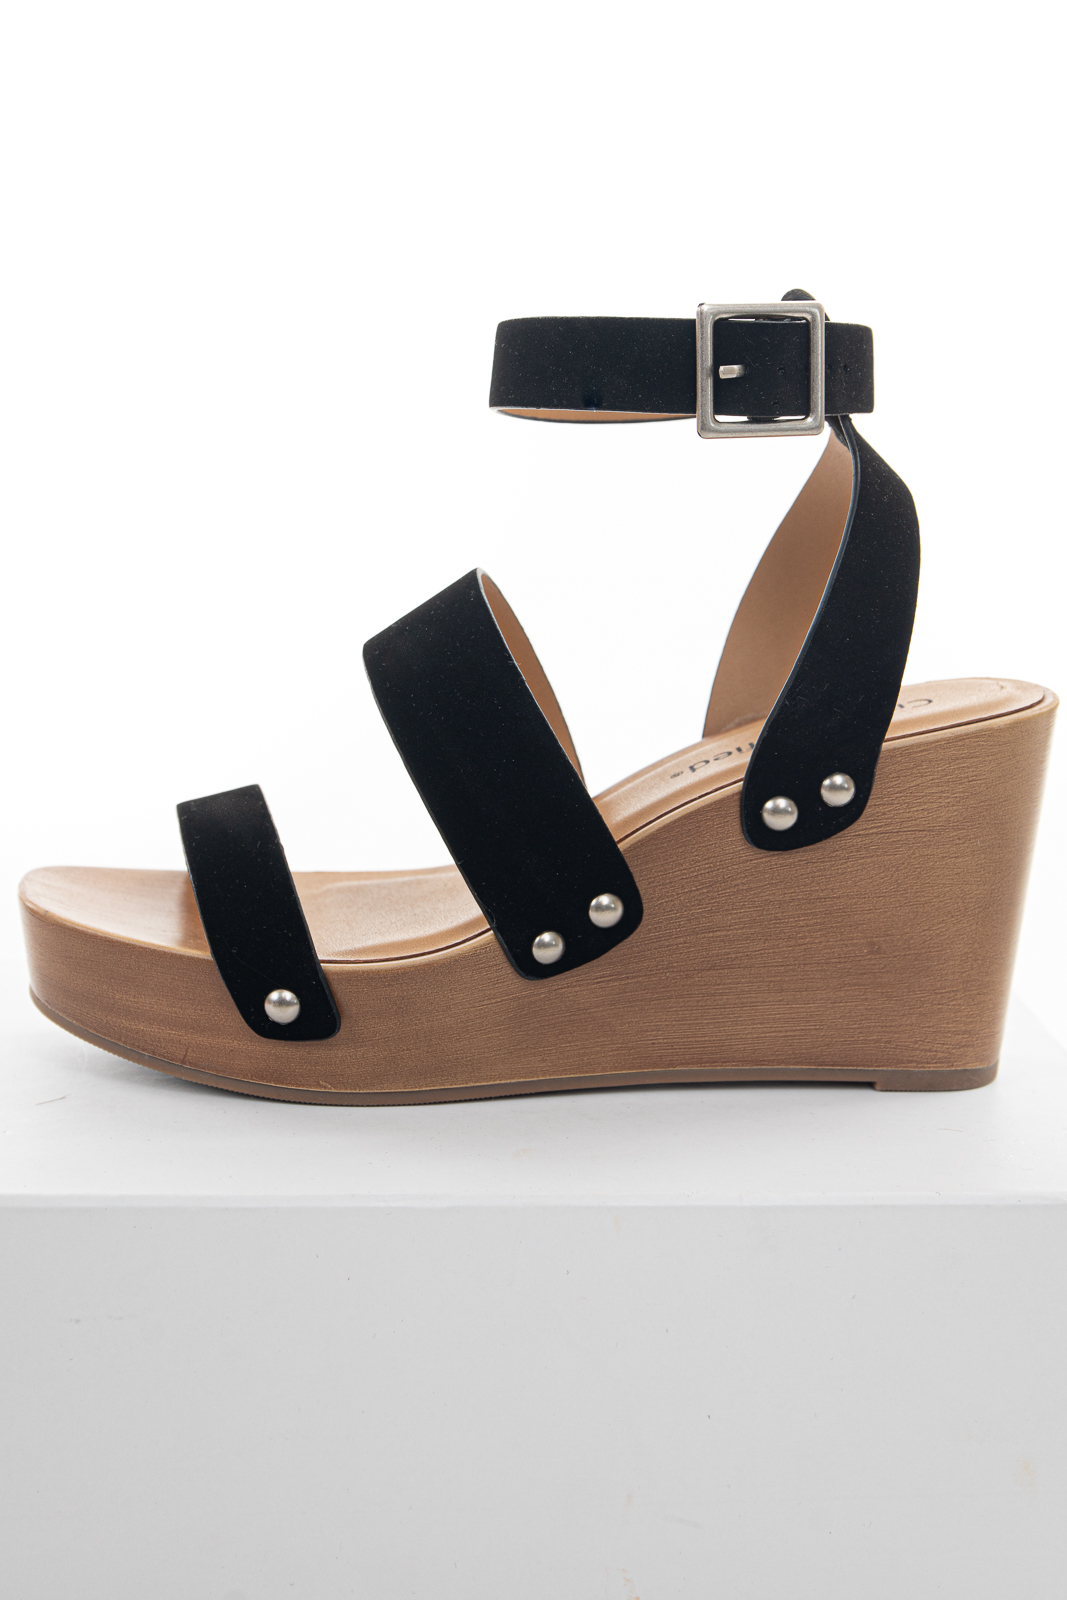 Black Faux Suede Strappy Wedge Sandal with Adjustable Buckle